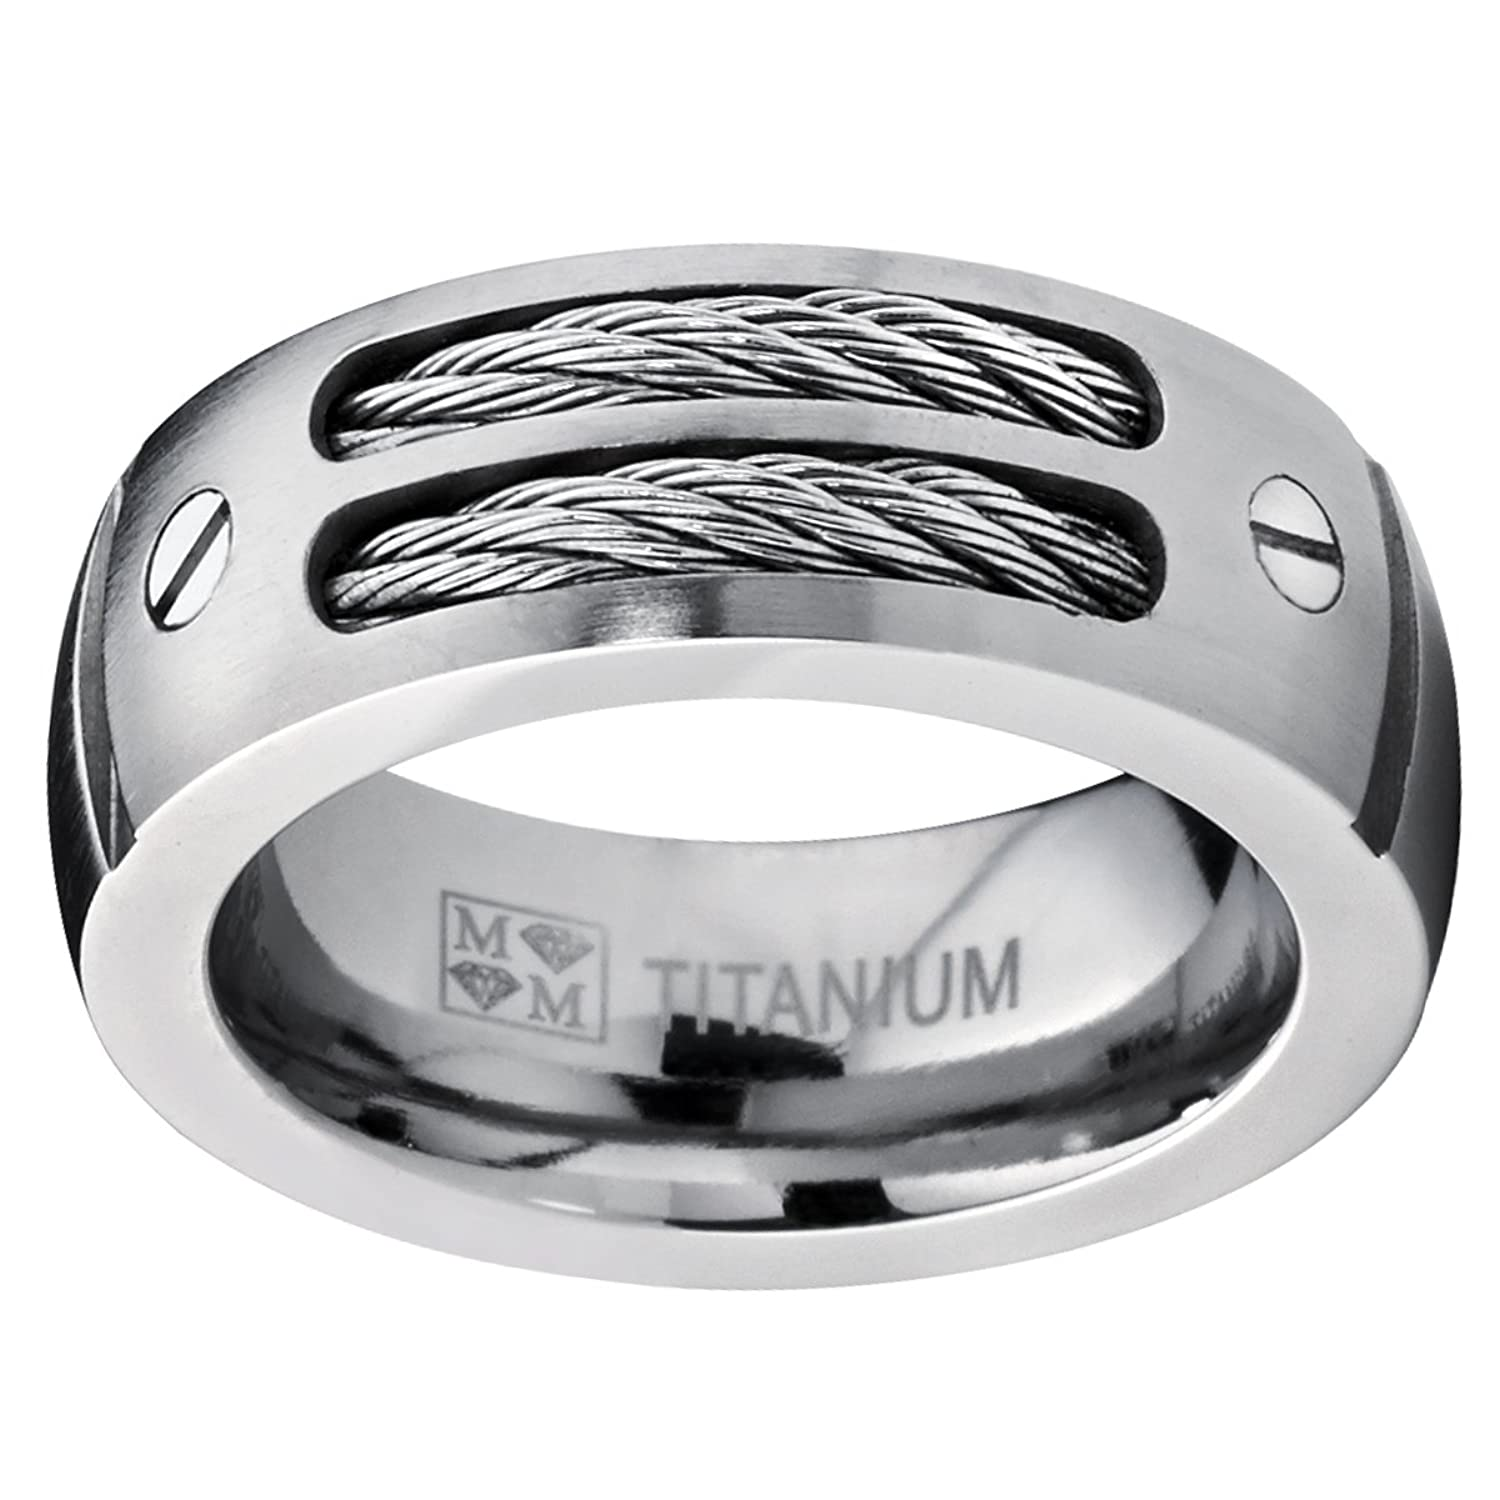 8mm men s titanium ring wedding band with stainless steel cables